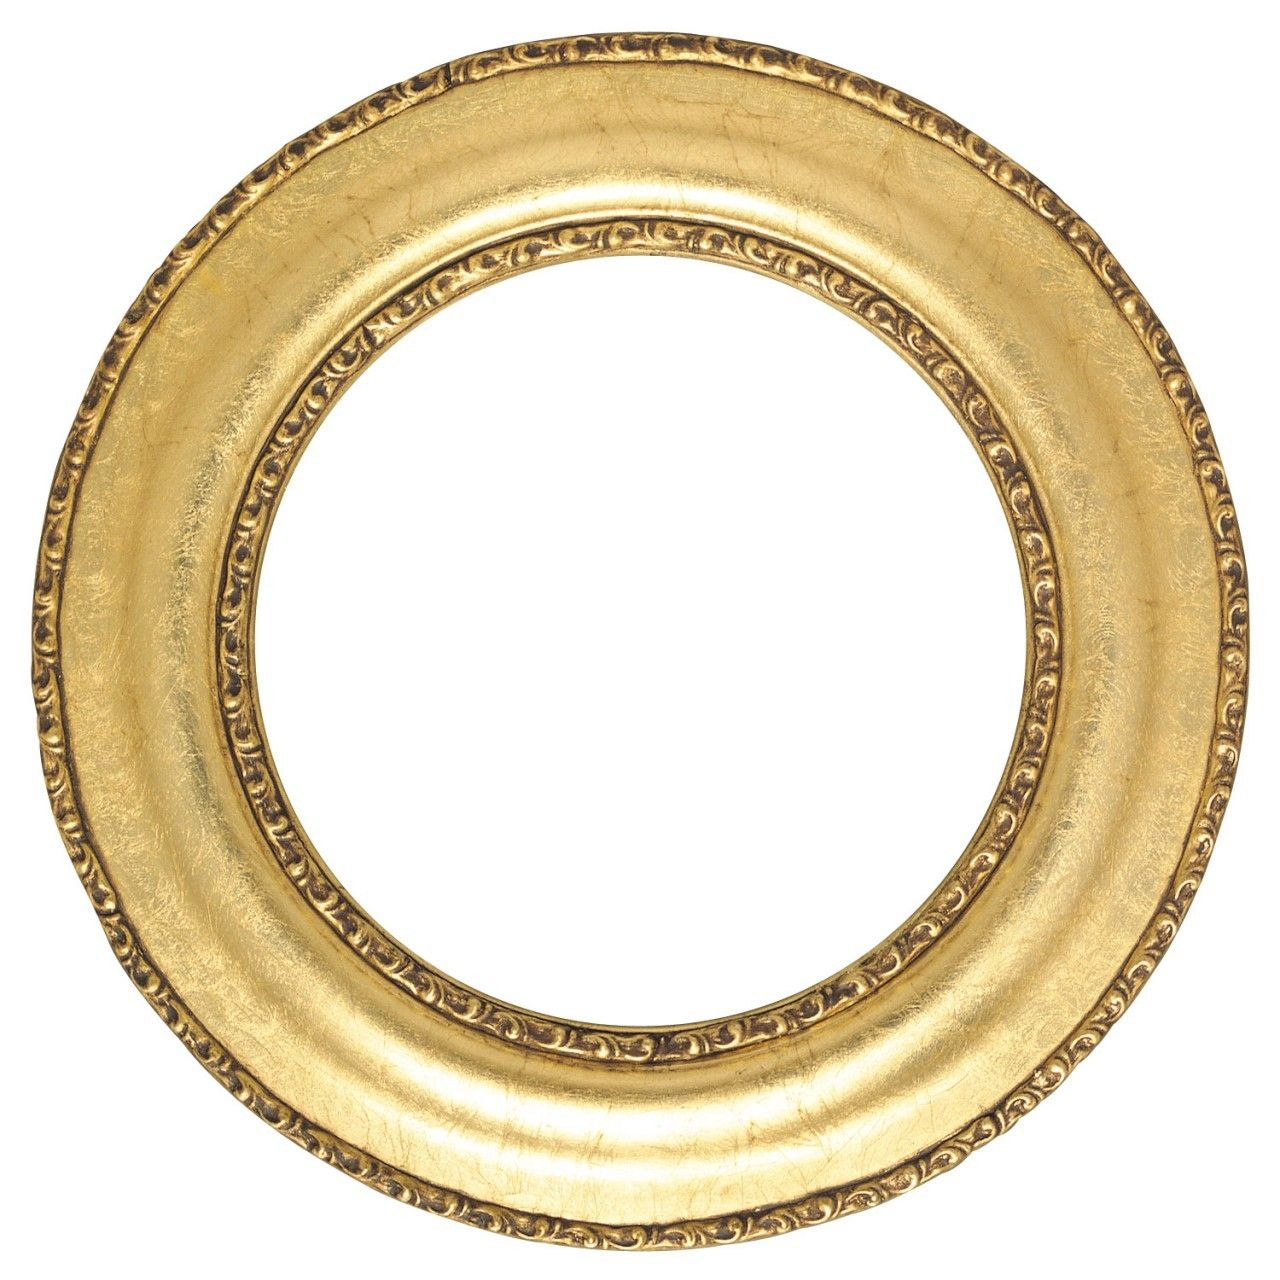 Round Frame In Gold Leaf Finish Antique Gold Picture Frames With Ornate Decoration Round Picture Frames Gold Picture Frames Picture Frame Shop